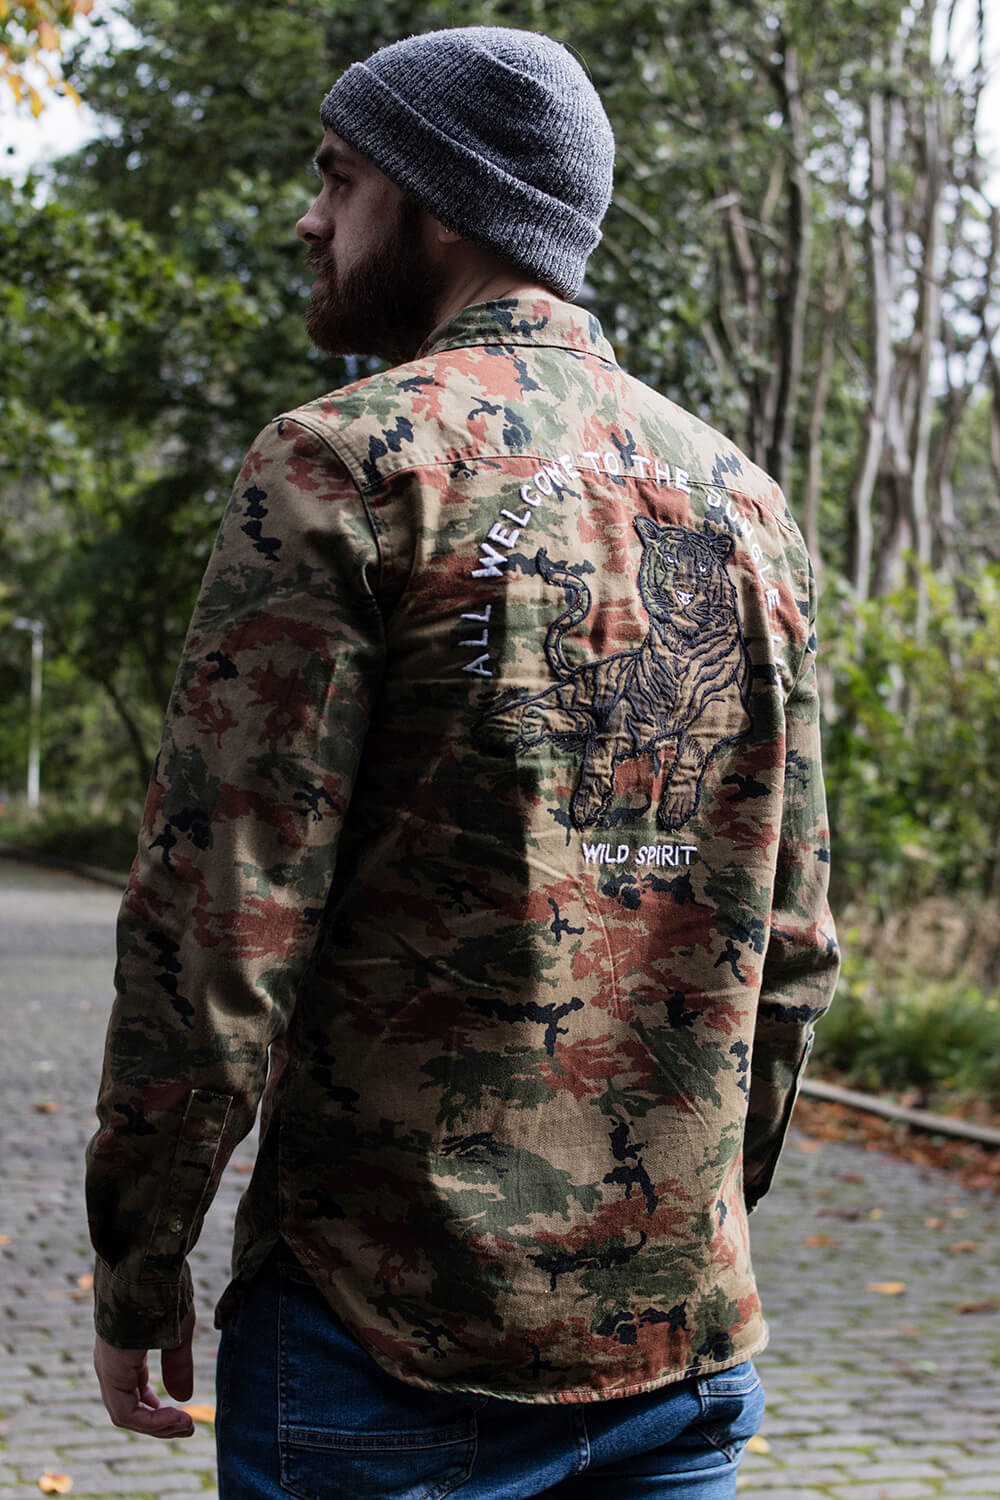 All Welcome to the Jungle Life Camo Shirt from Zara